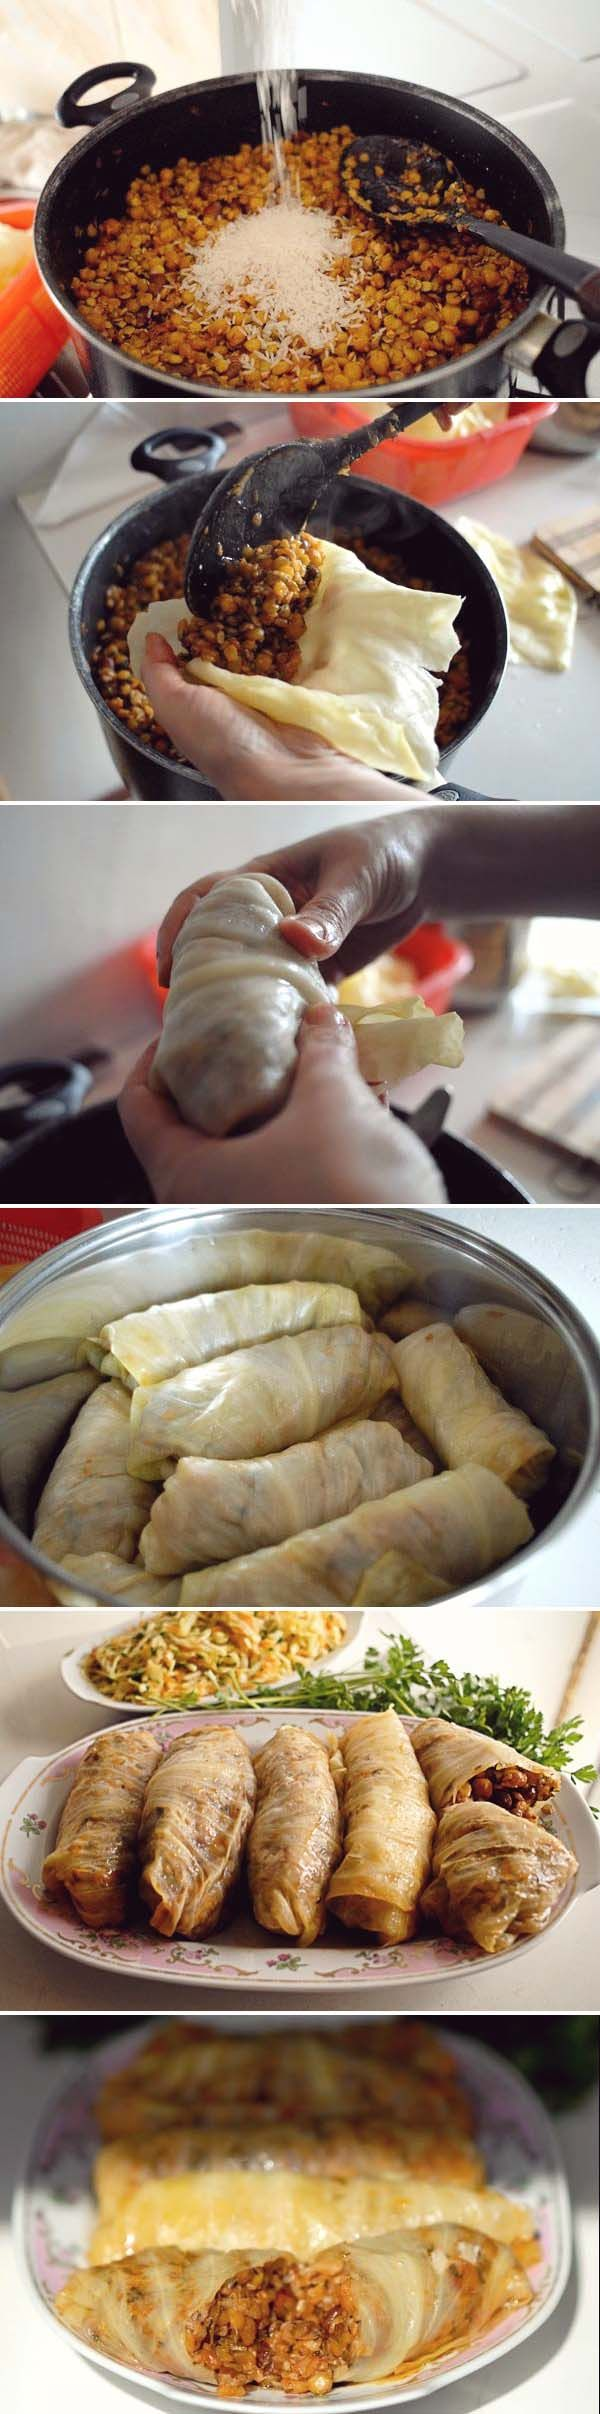 Rolled Cabbage Stuffed with Legumes + Rice | PASUTS TOLMA; photo Nazik Armenakyan #recipe #armenianfood #vegan